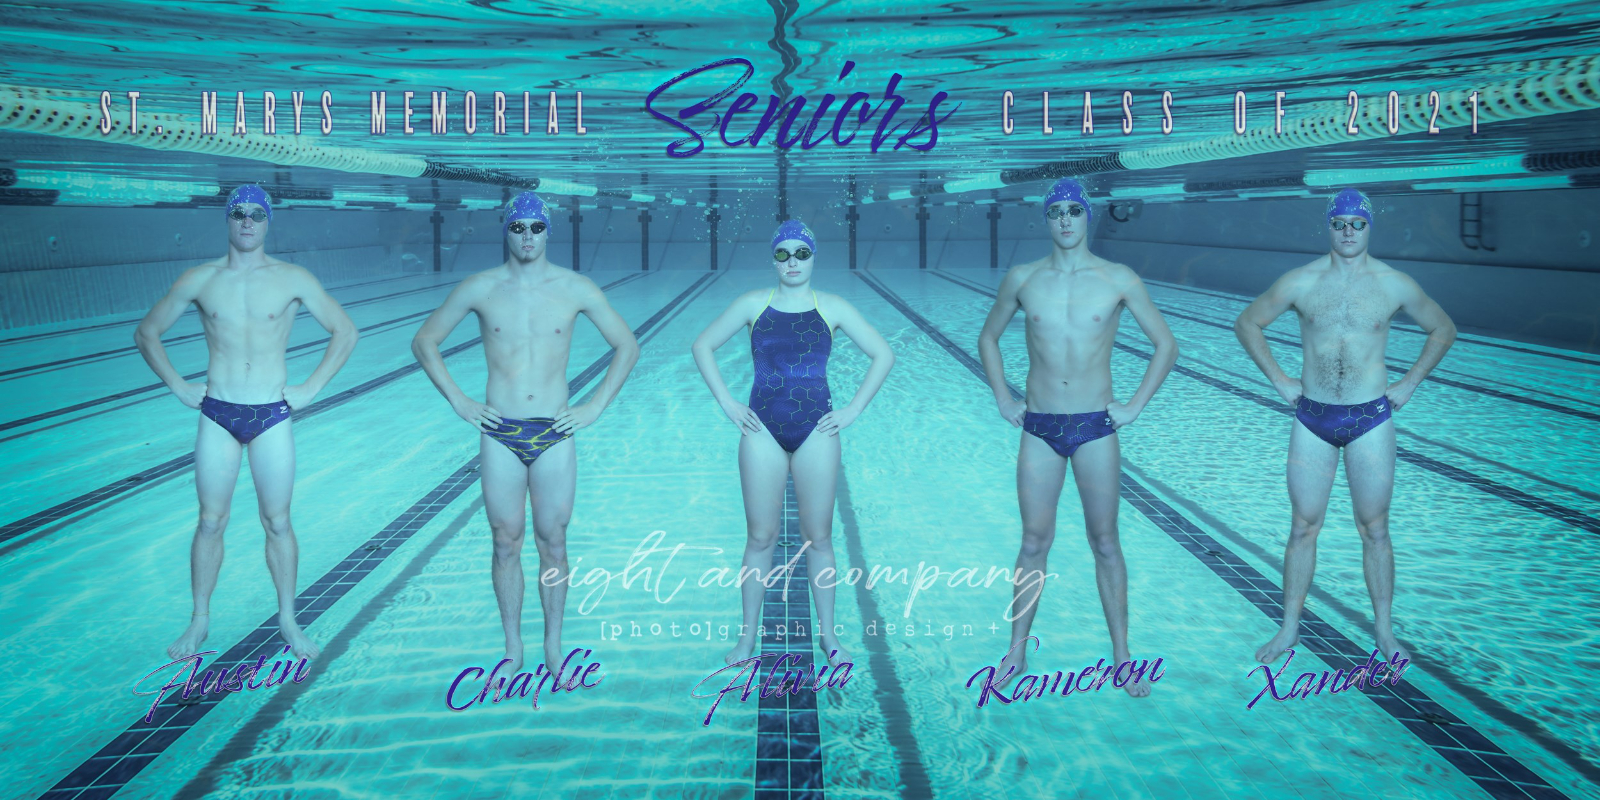 Good Luck to the Swim and Dive Team